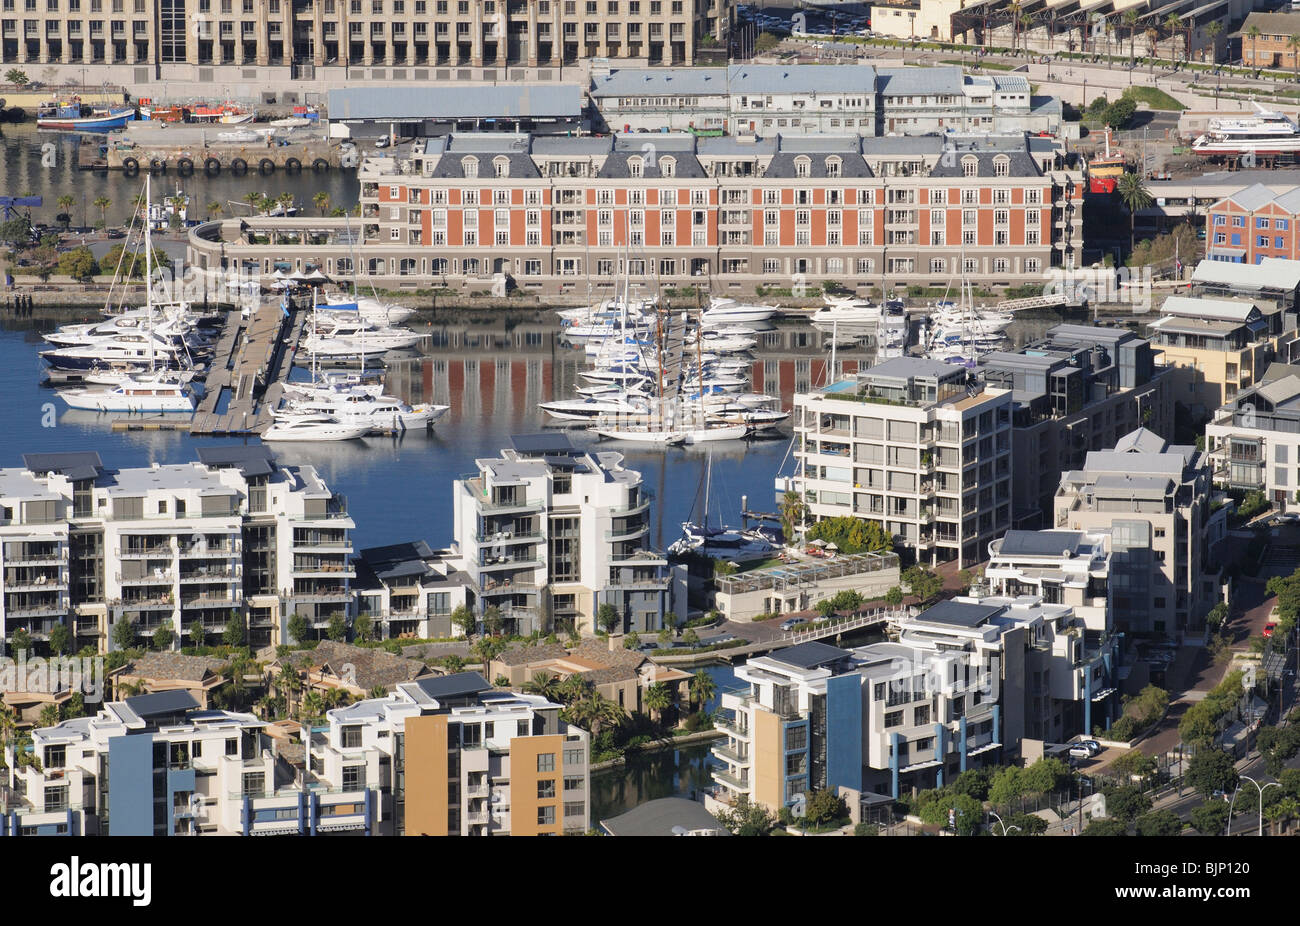 The red brick building is the Cape Grace a luxury hotel surrounded by a marina and residential housing on the V&A - Stock Image